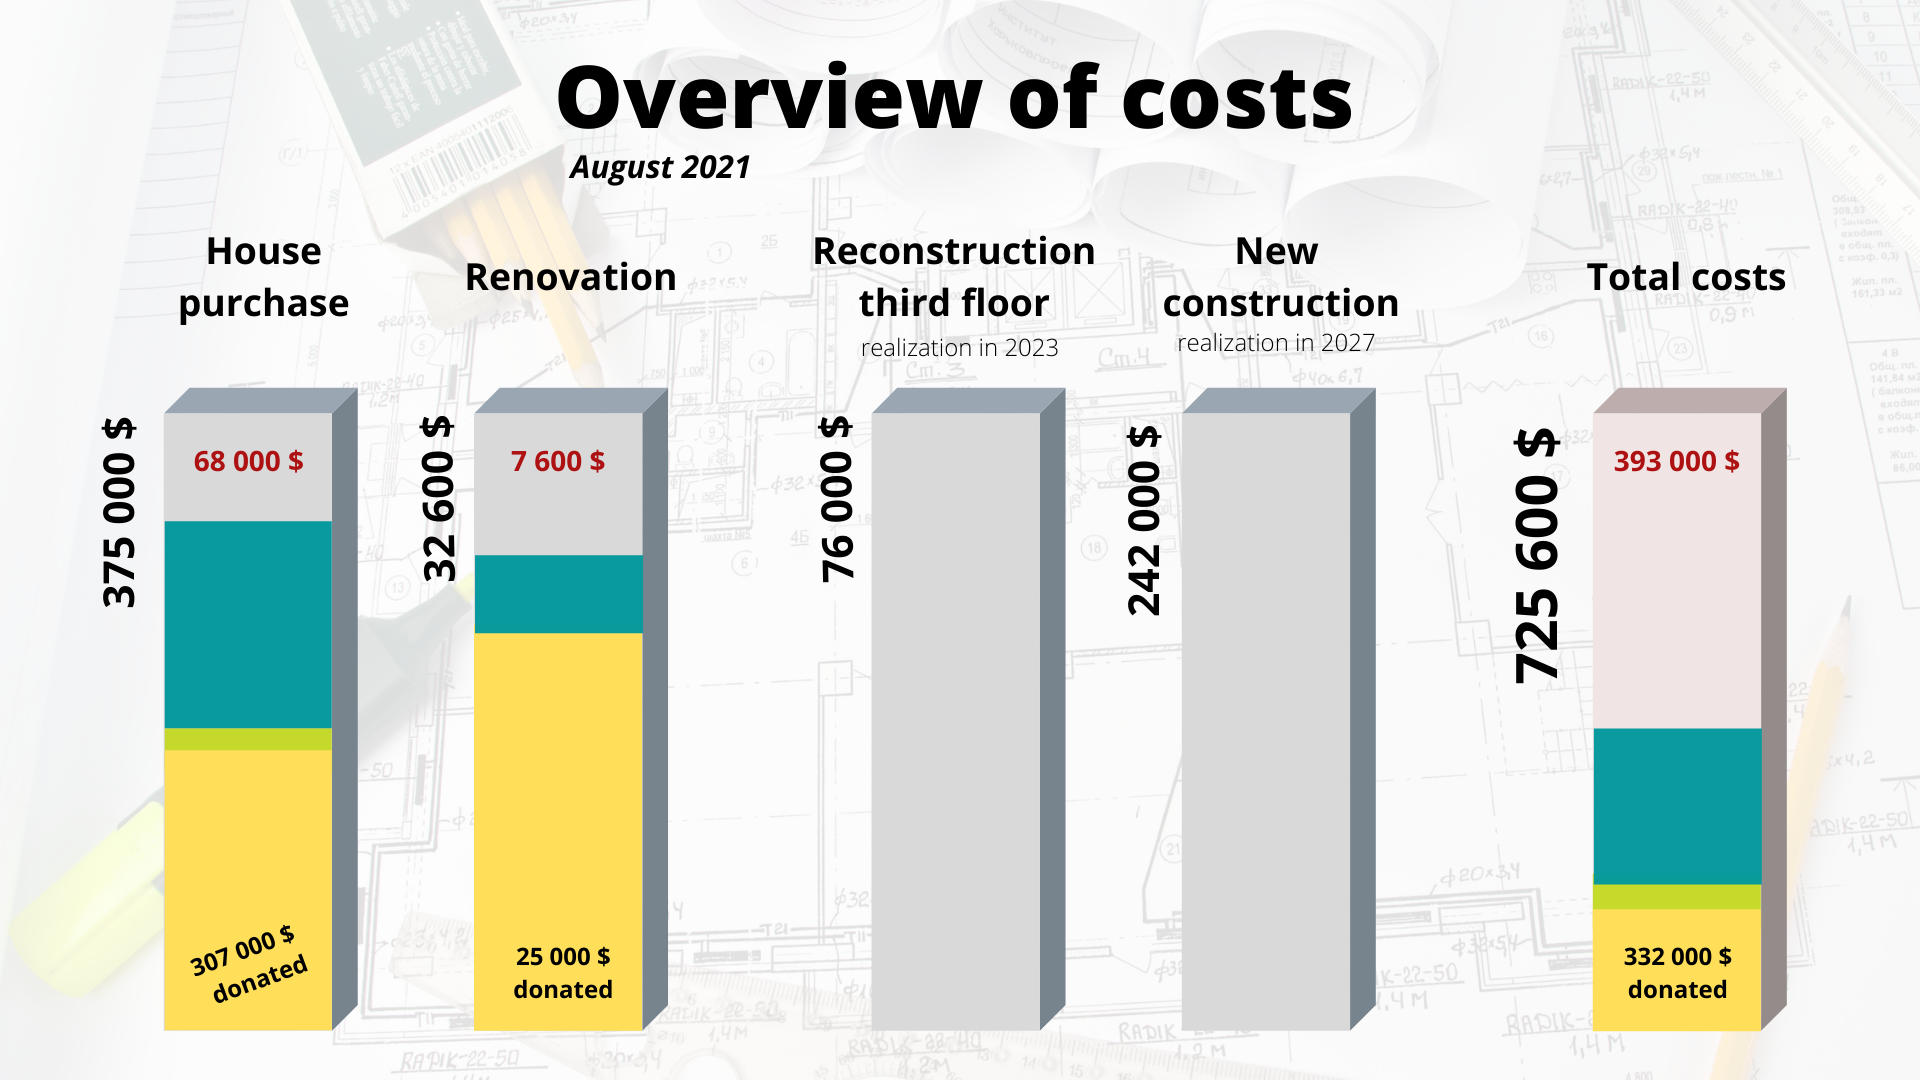 Overview of costs